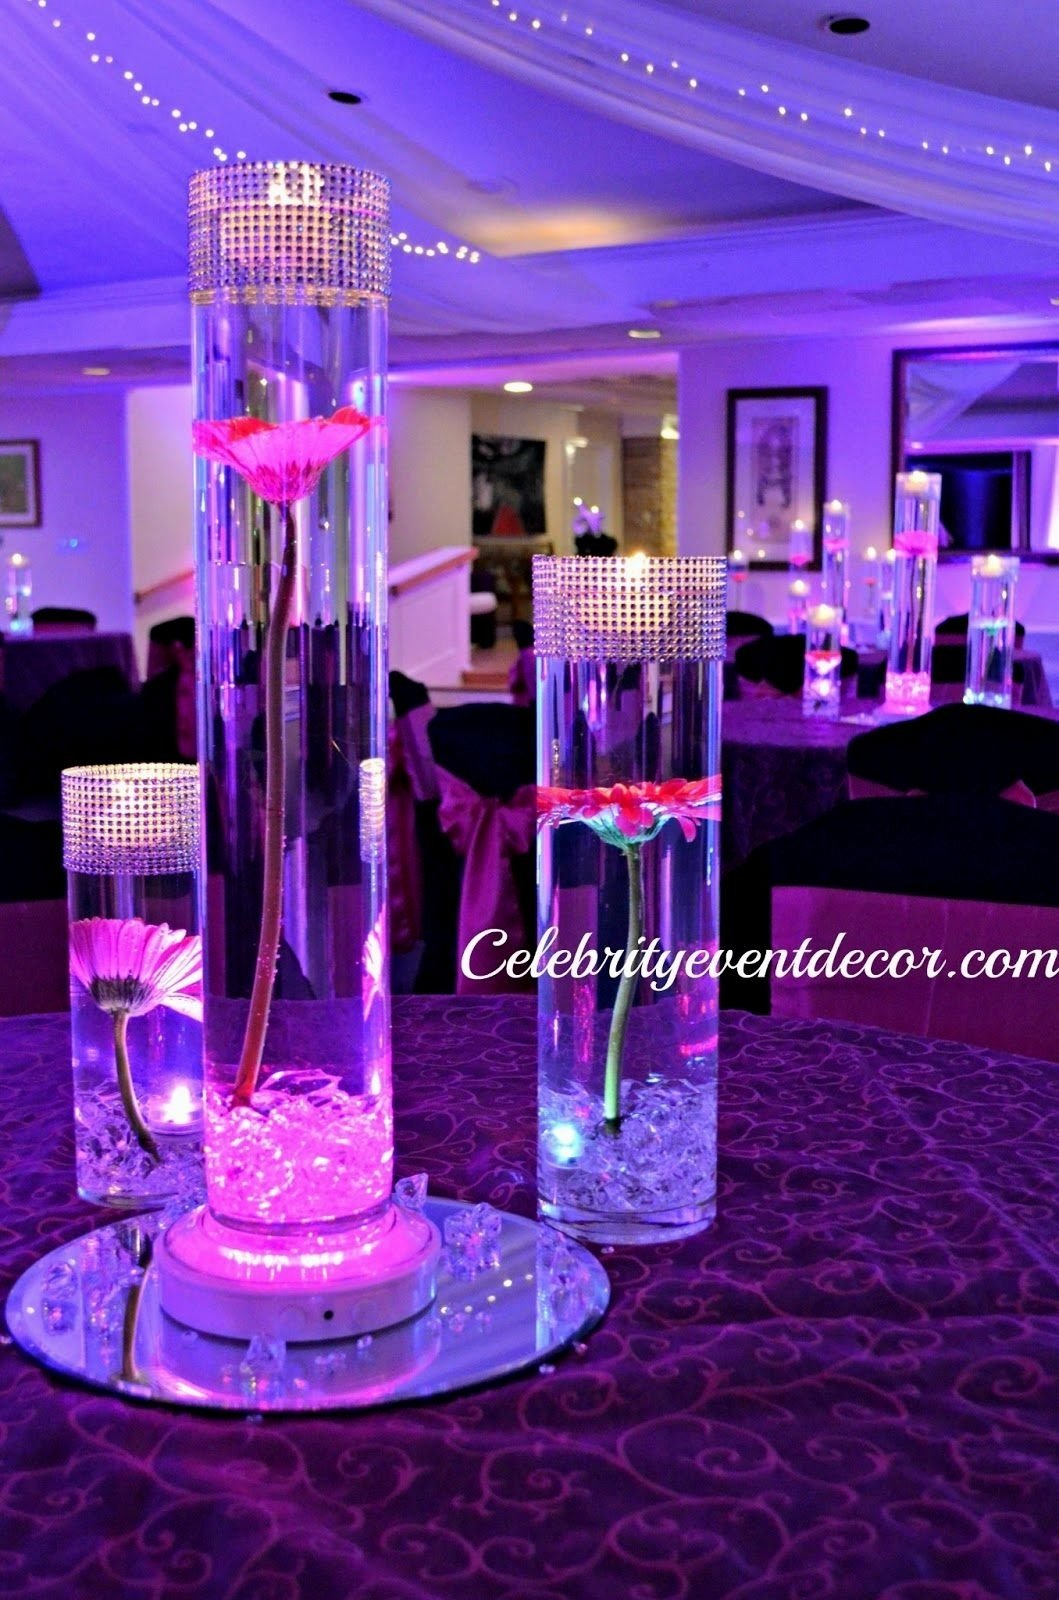 10 Most Popular Sweet 16 Party Decoration Ideas ideas for sweet 16 birthday party themes decorating of party